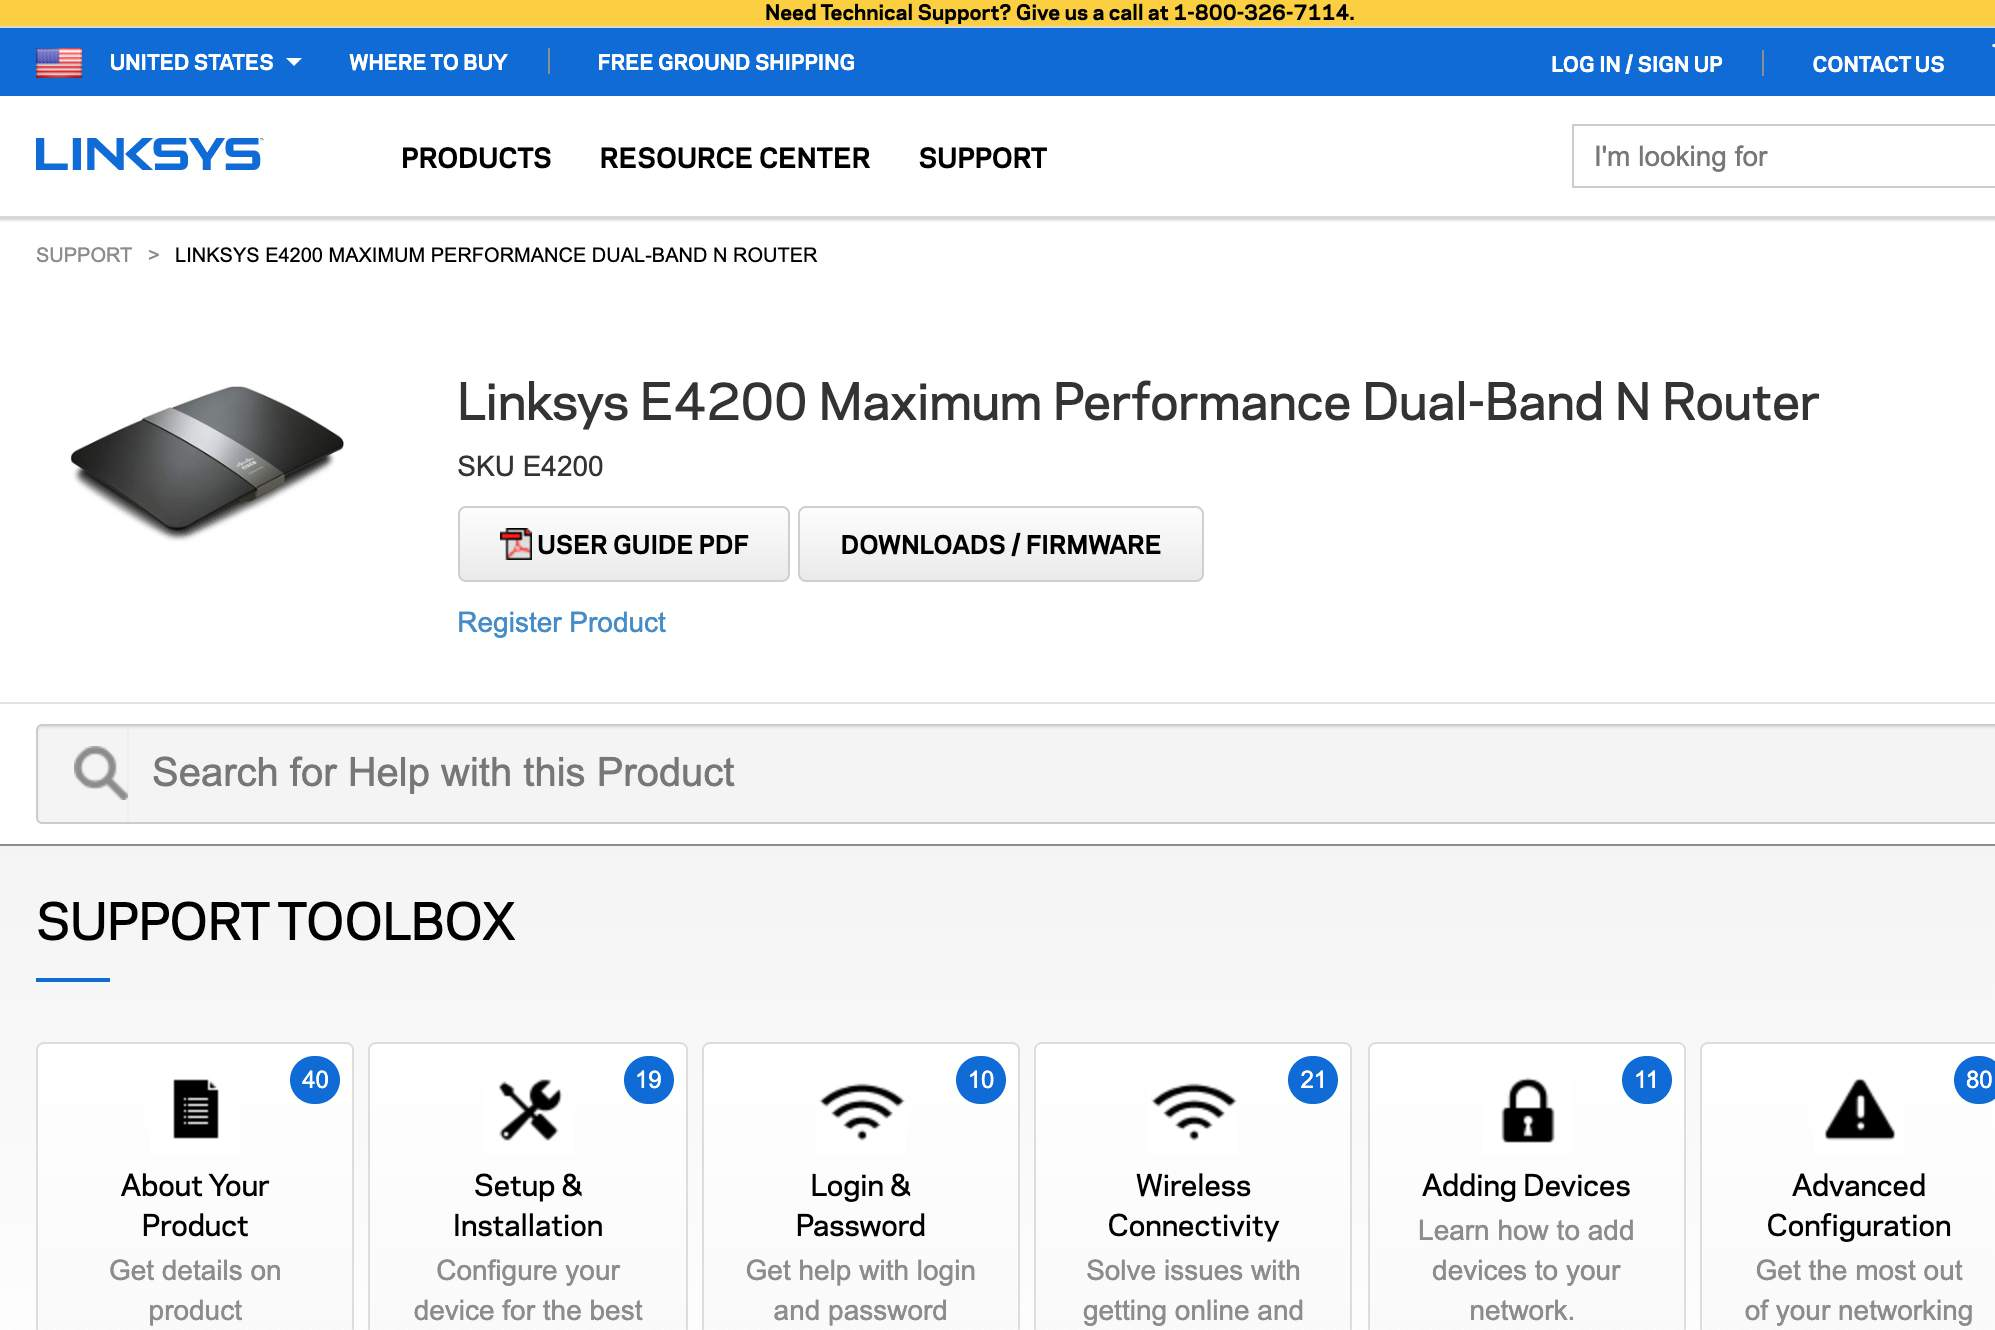 Linksys E4200 default password